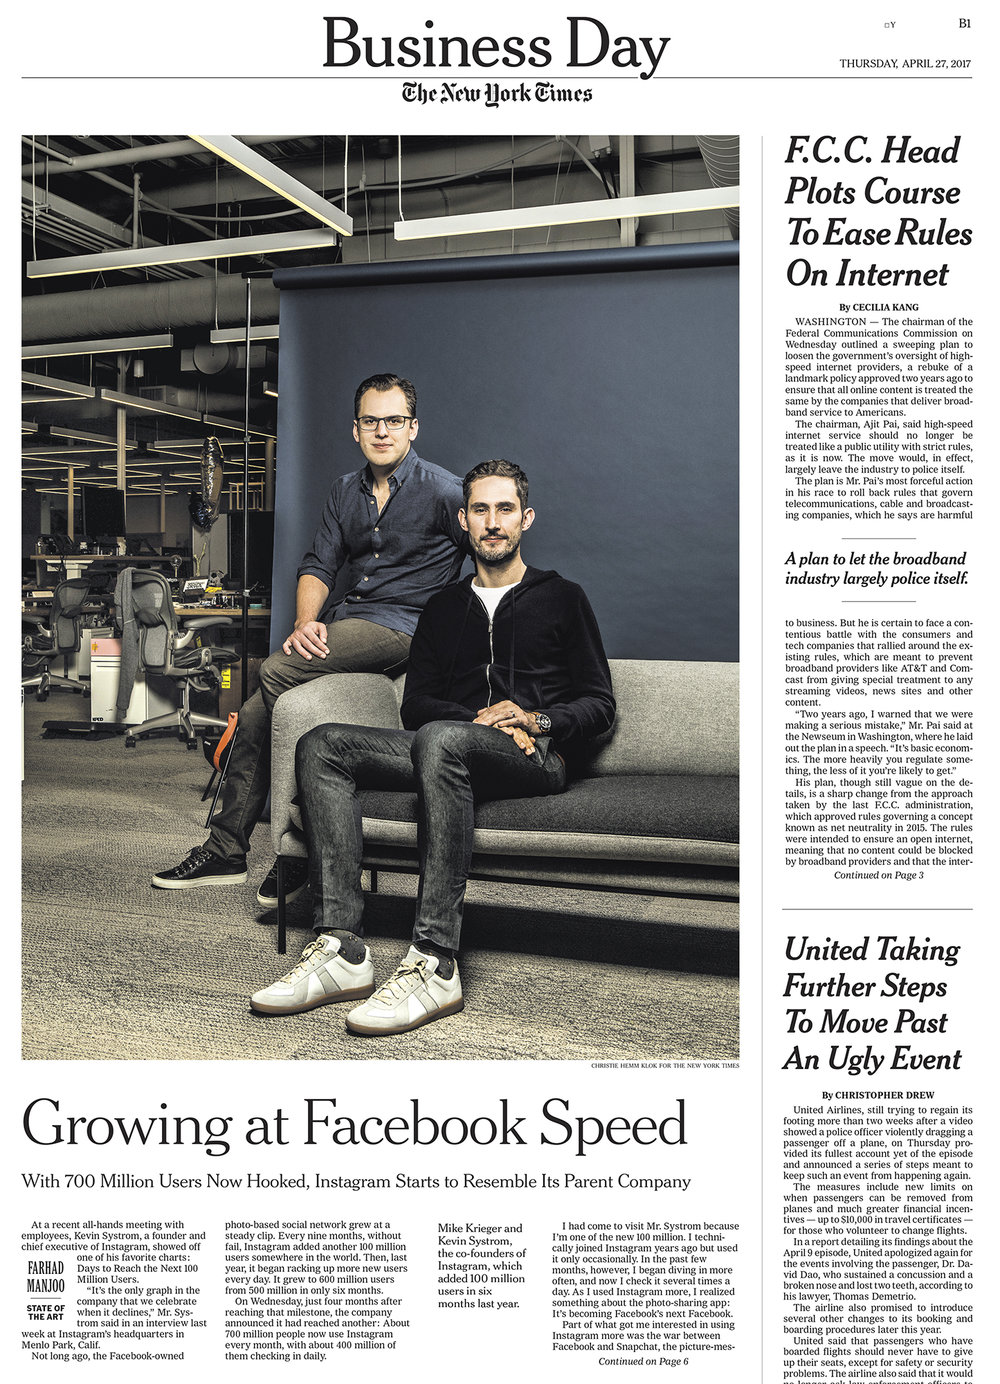 nstagram founders, Kevin Systrom and Mike Krieger for The New York Times.